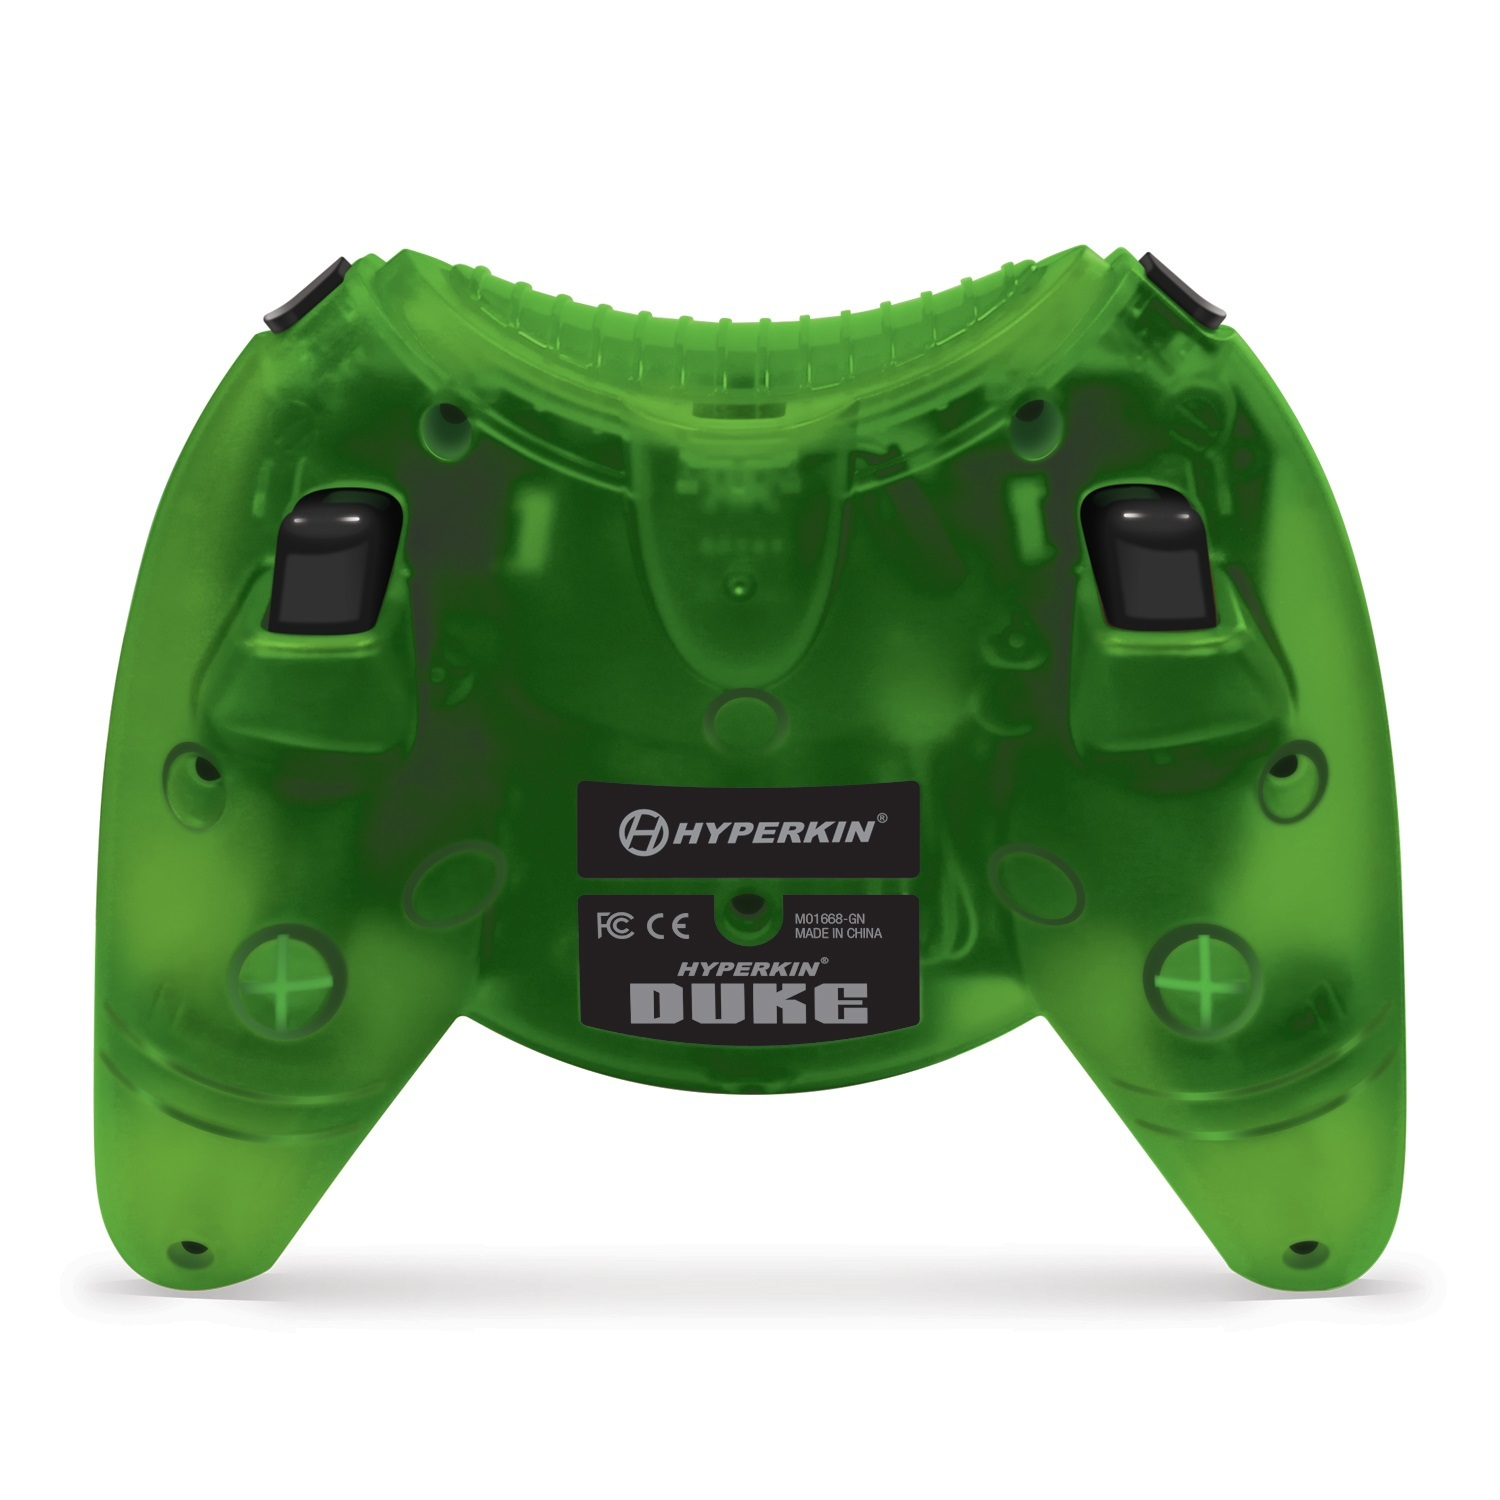 Hyperkin Xbox One DUKE Wired Controller - Green for Xbox One image